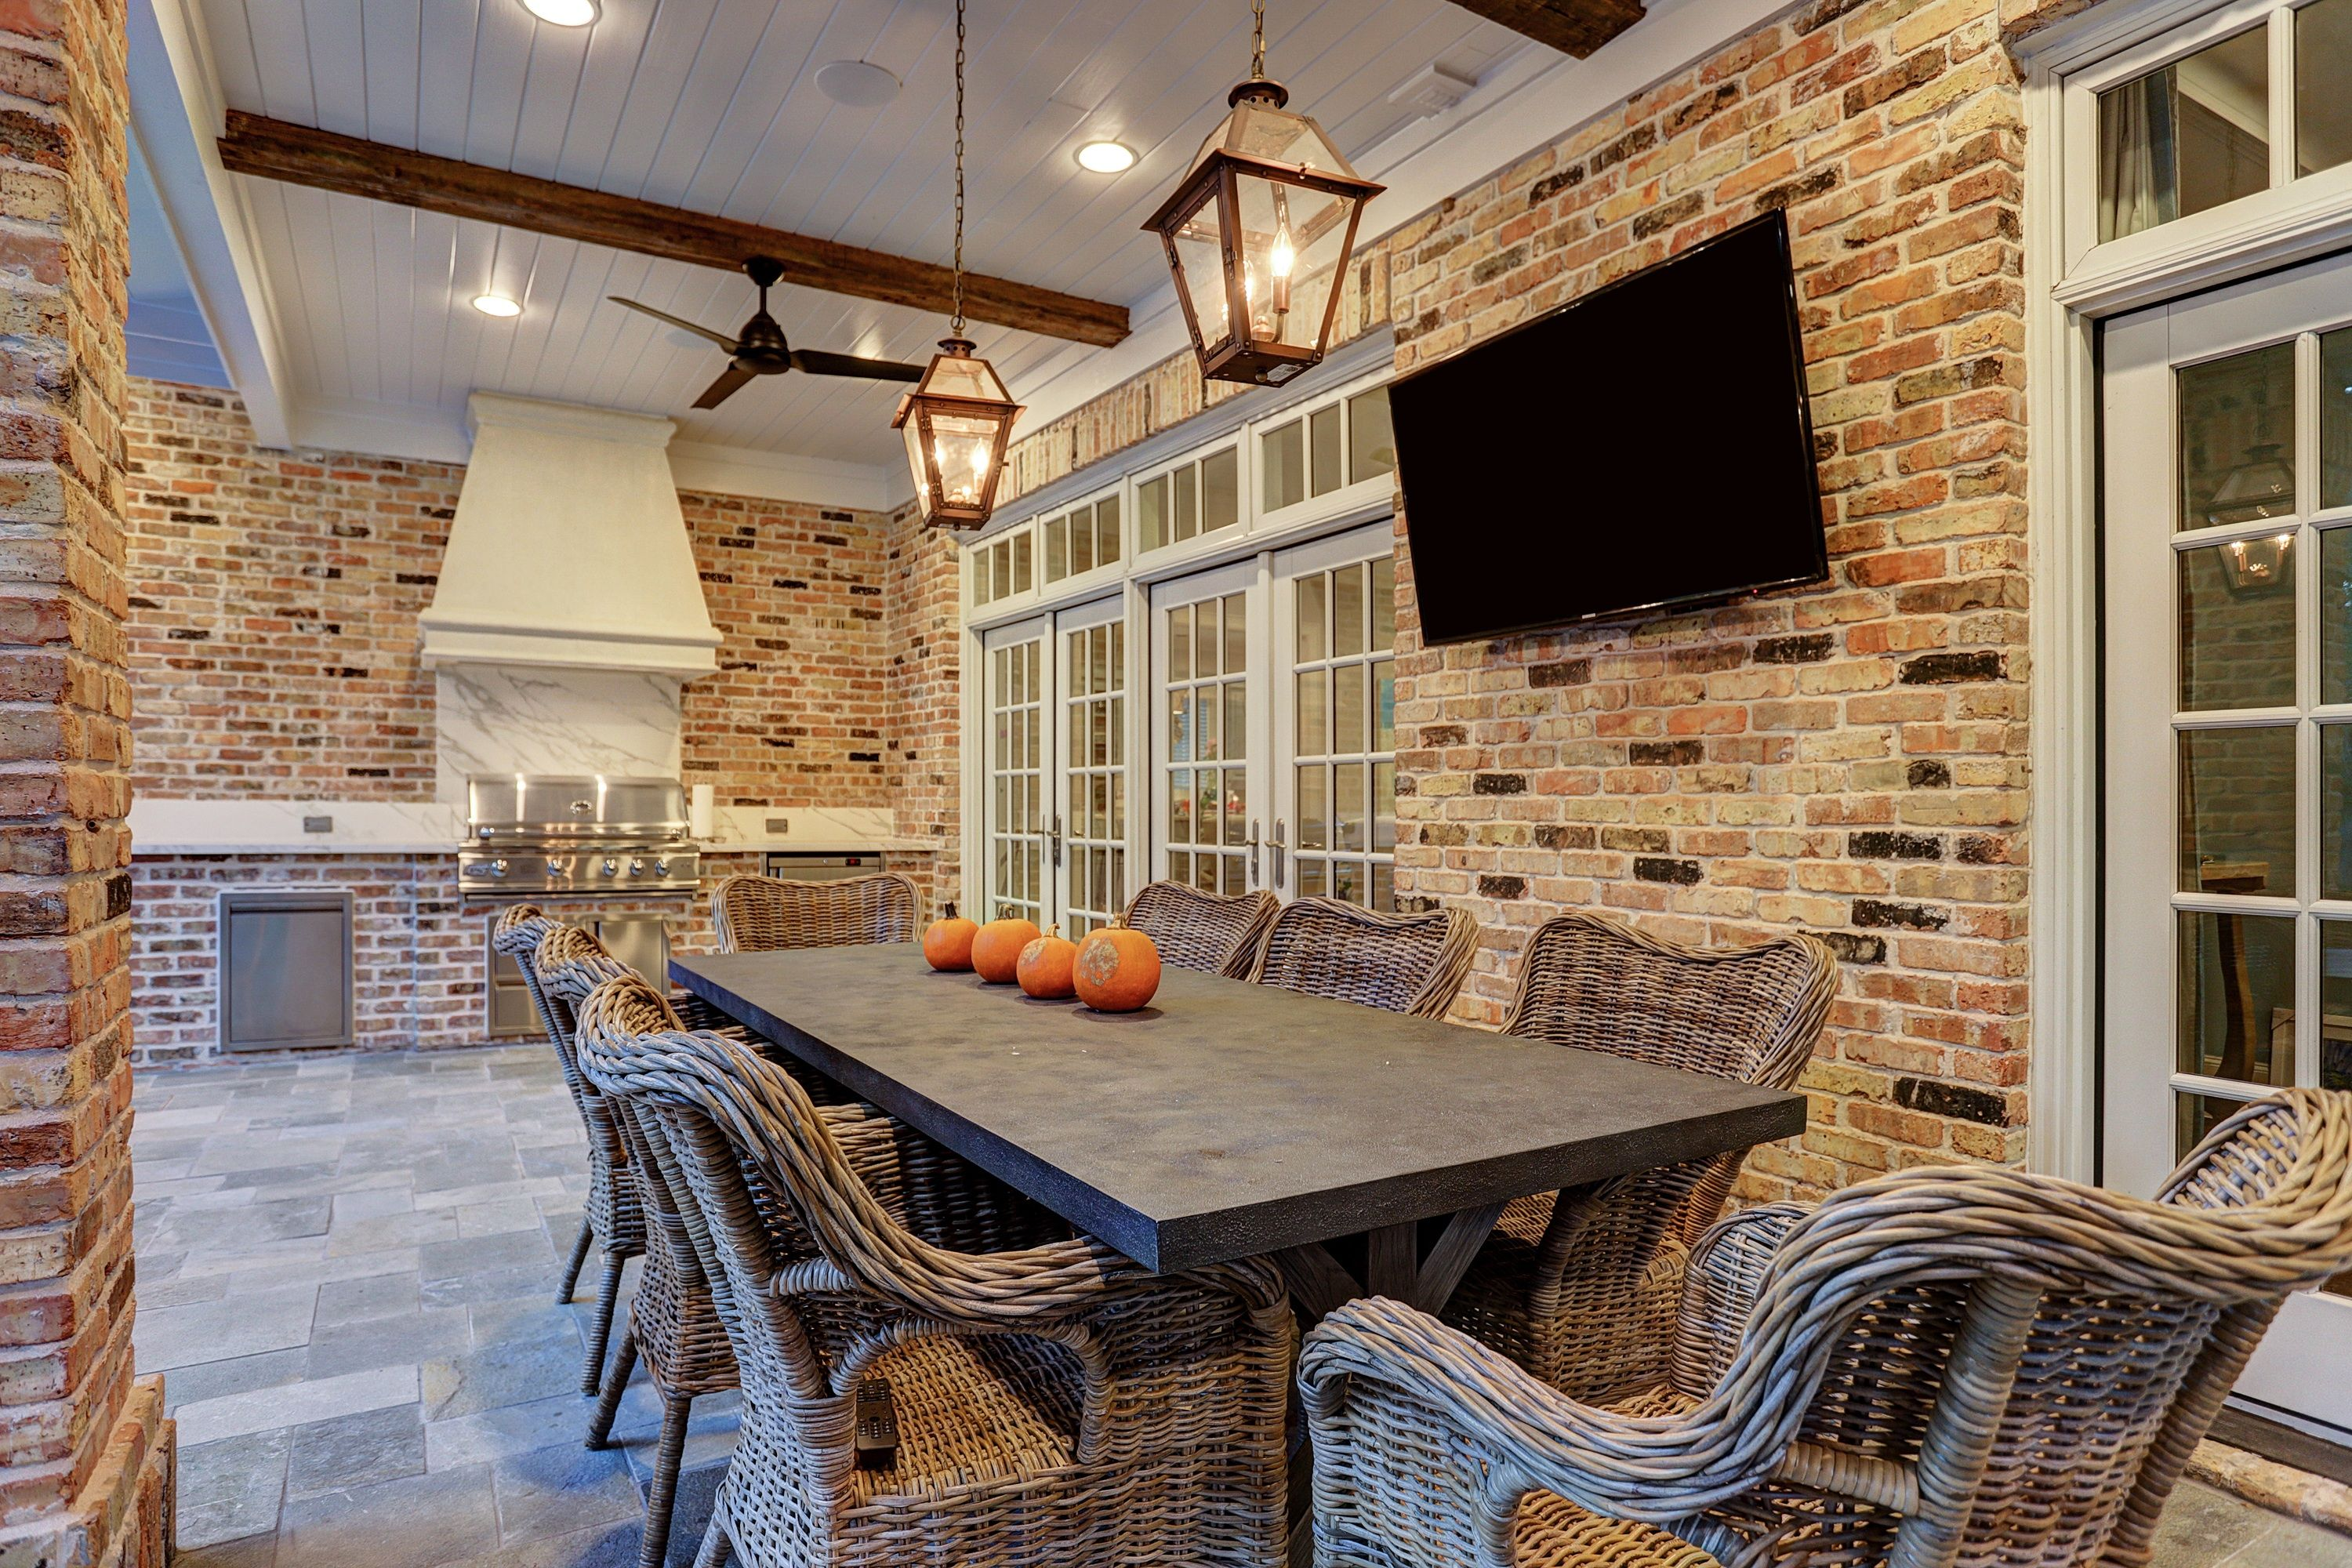 outdoor living room with kitchen area and custom vent hood outdoor living patio design on outdoor kitchen and living space id=93447